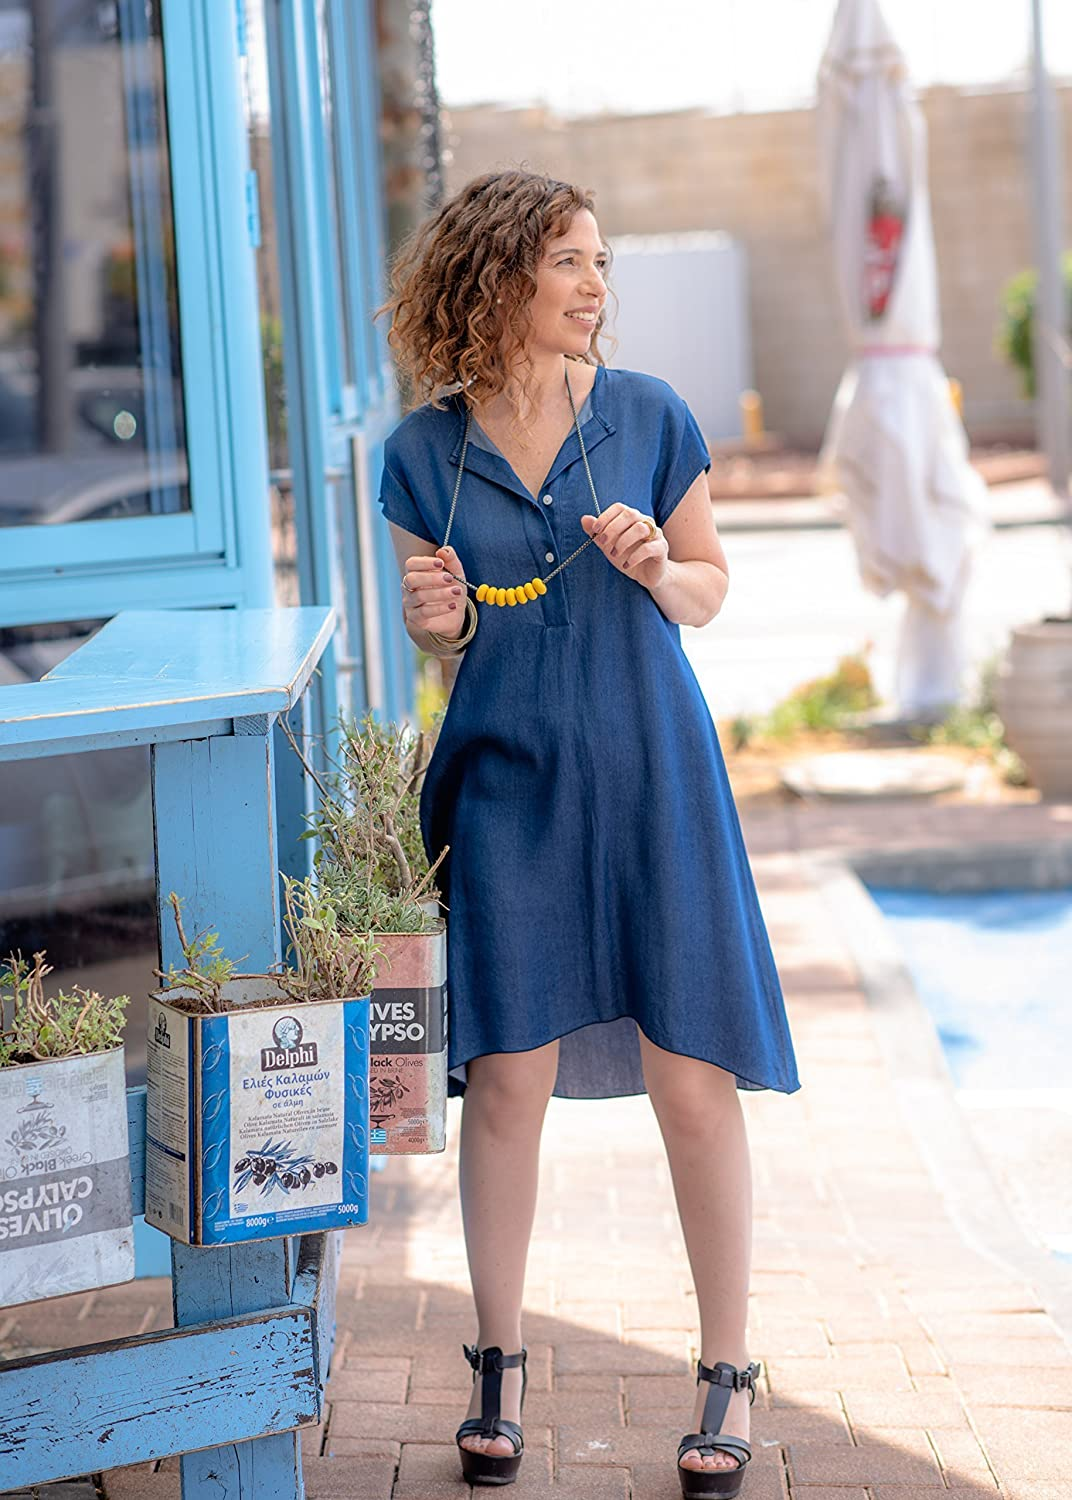 9839754ed3 Amazon.com  Handmade Designer Women s Oversized Spring or Summer Blue Denim  Dress